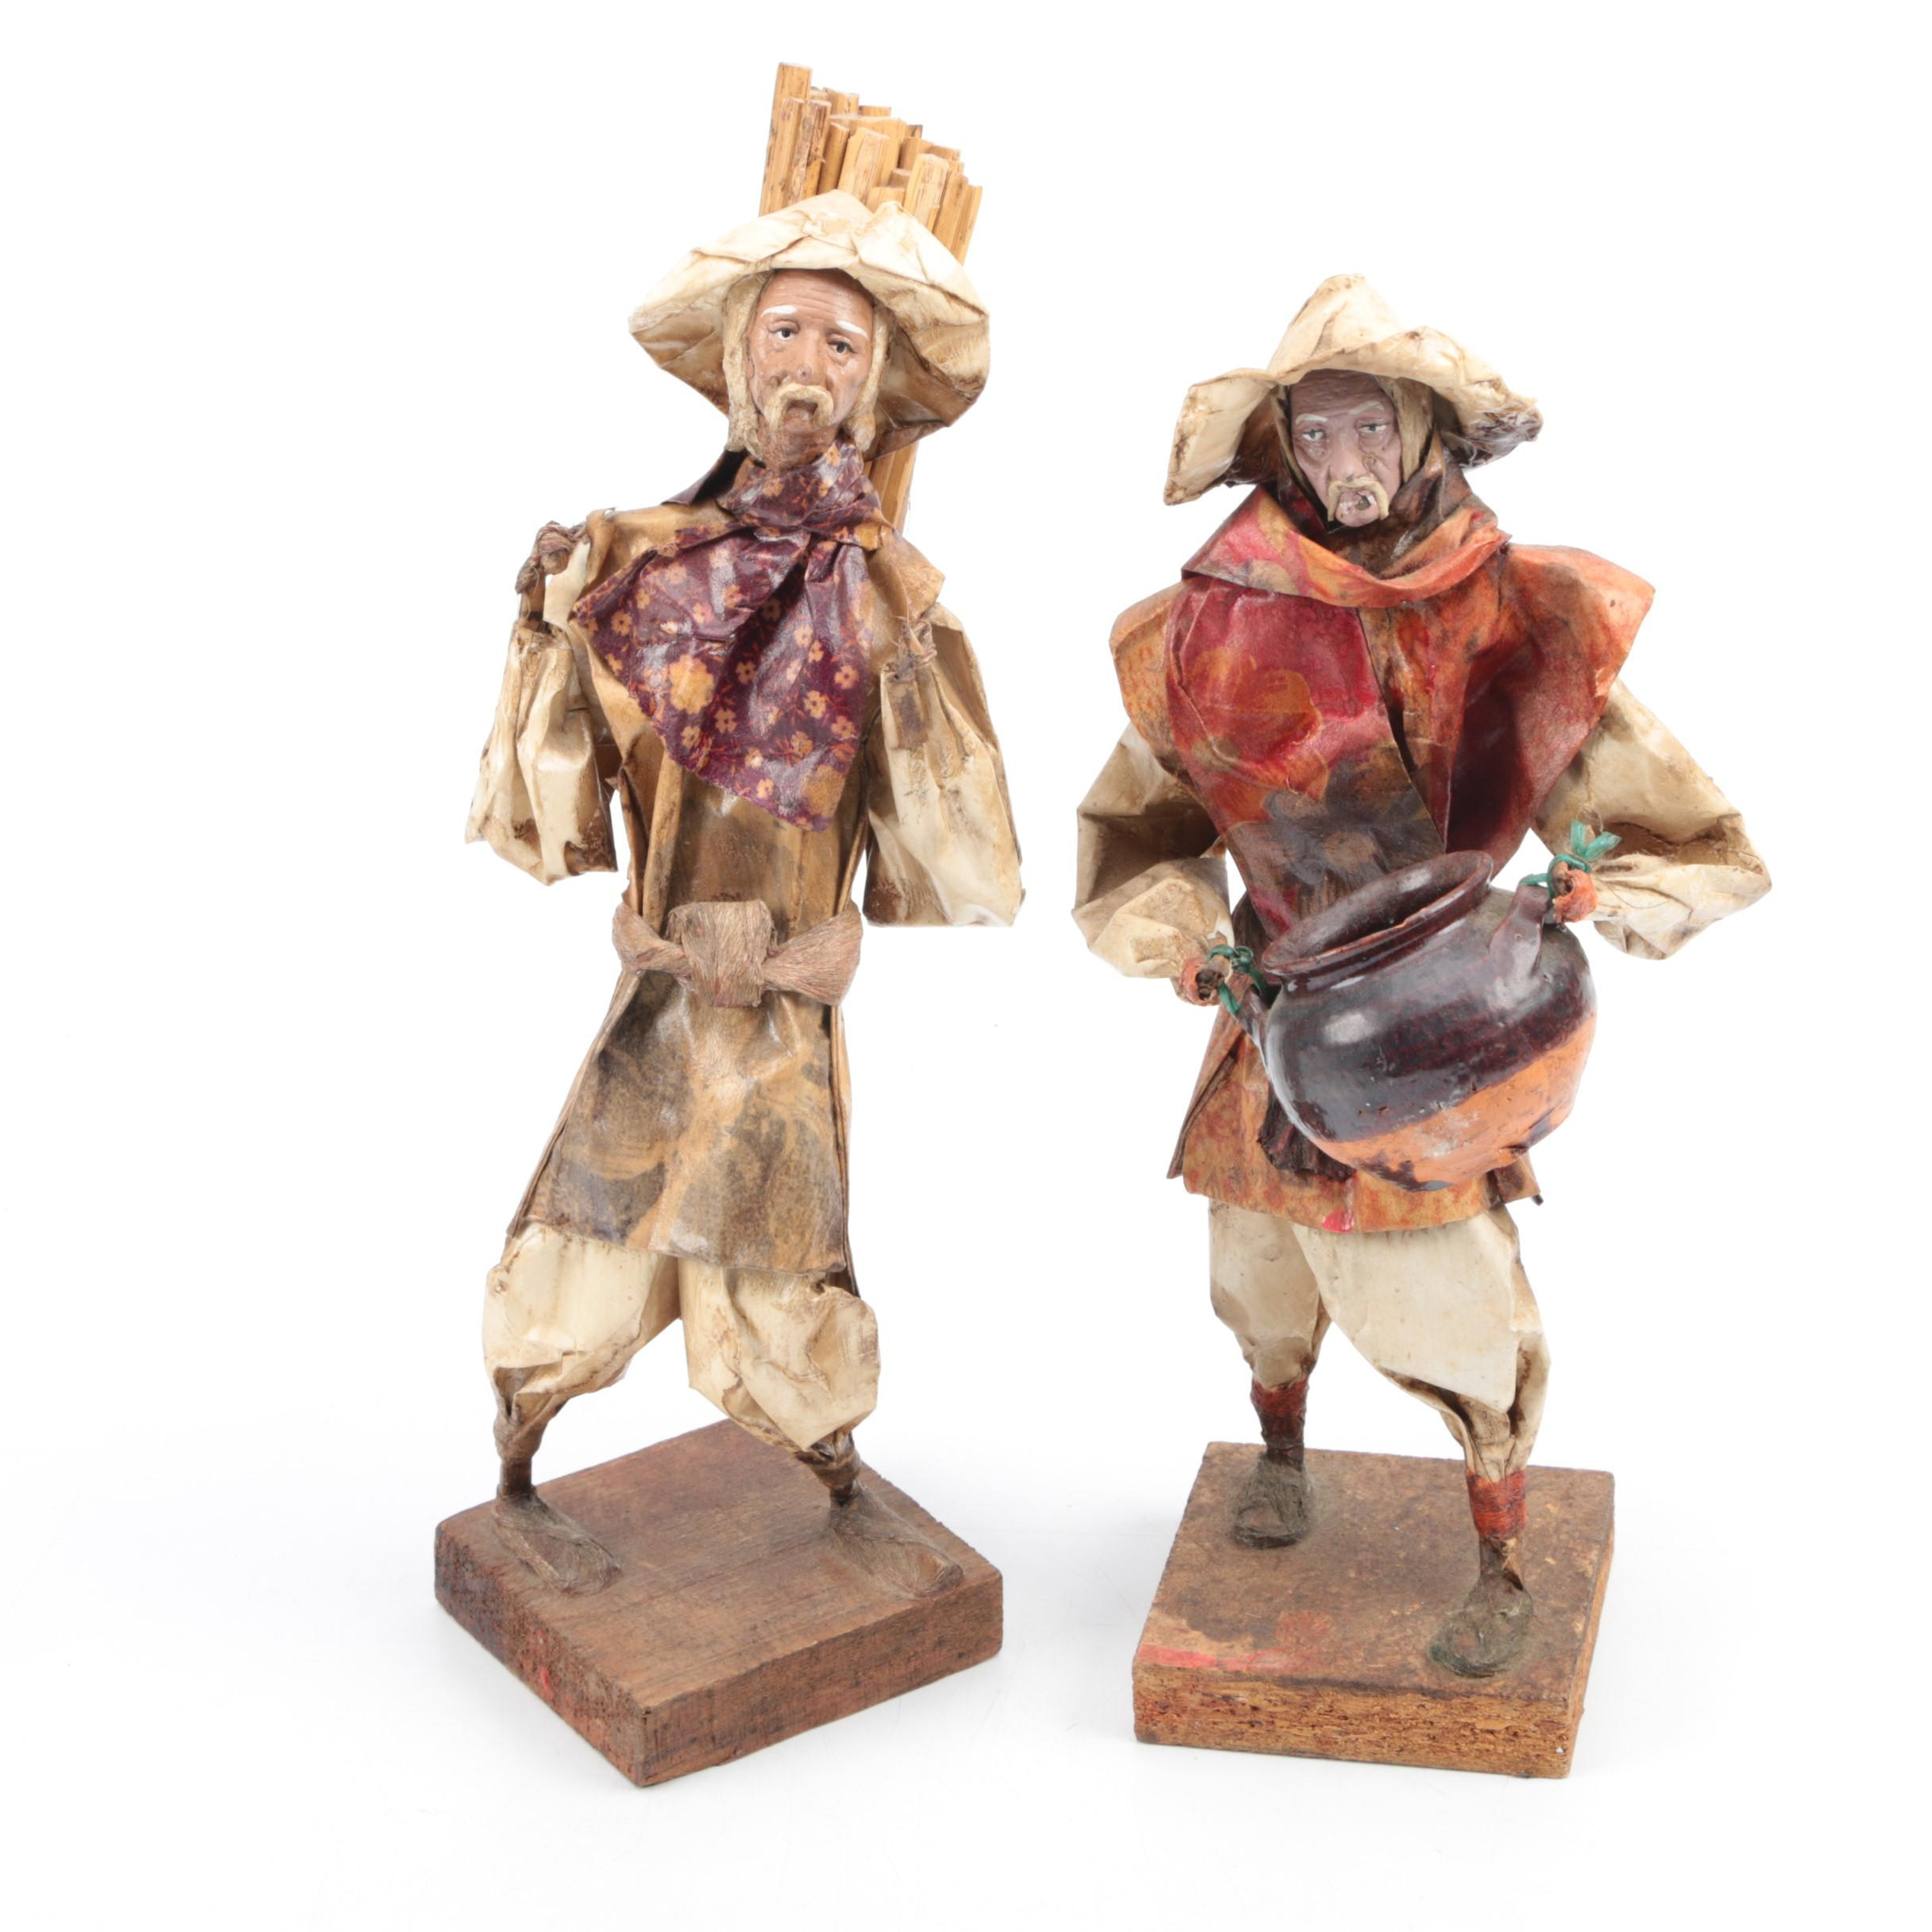 Pair of Wooden Figurines